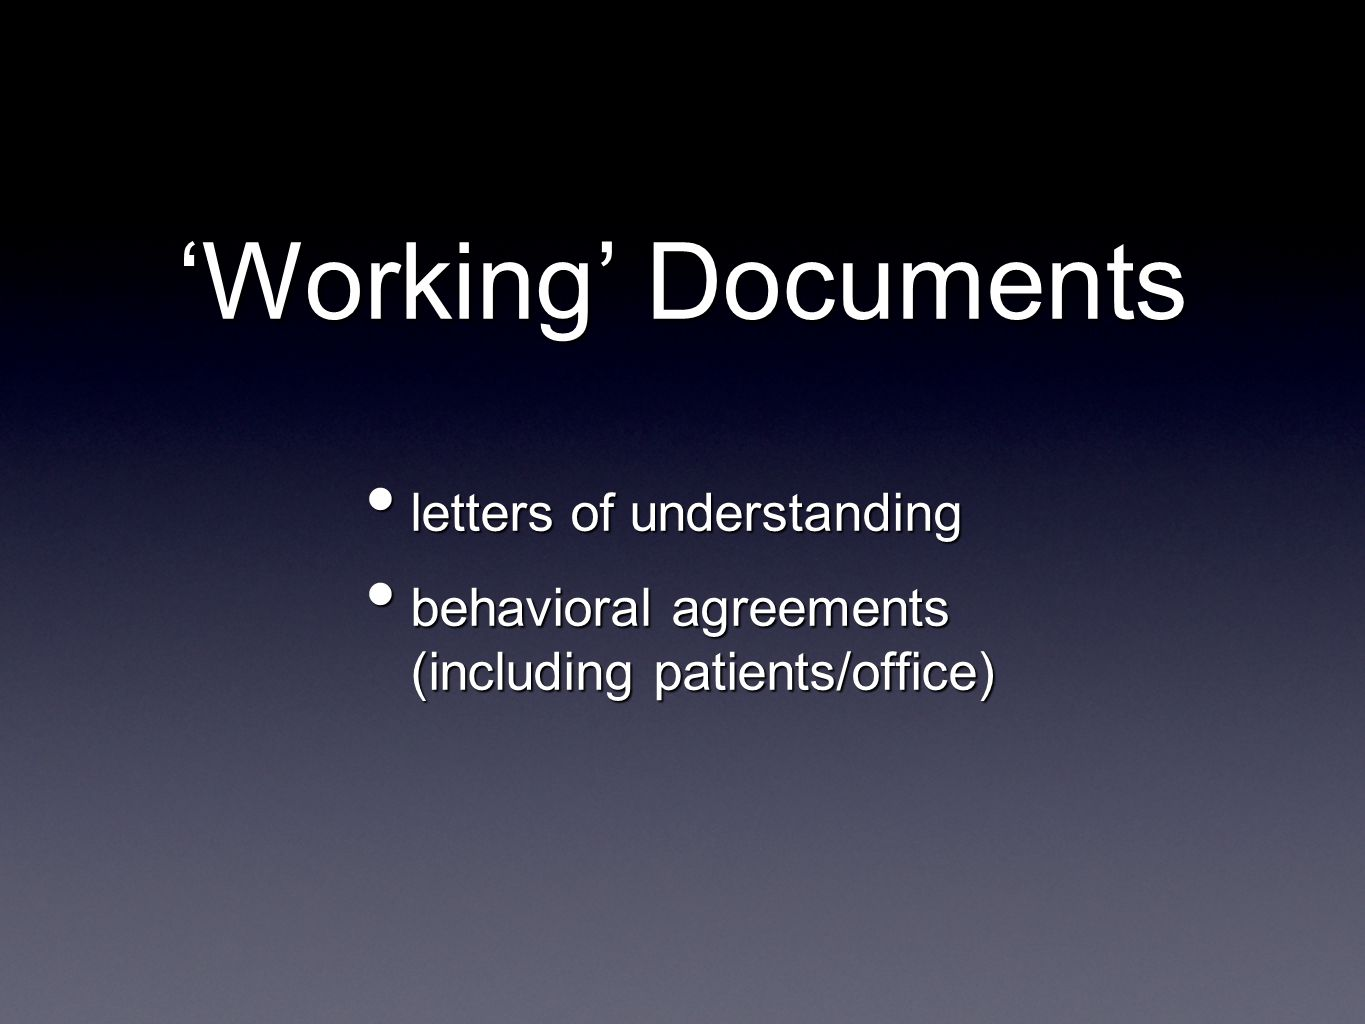 'Working' Documents letters of understanding letters of understanding behavioral agreements (including patients/office) behavioral agreements (including patients/office)